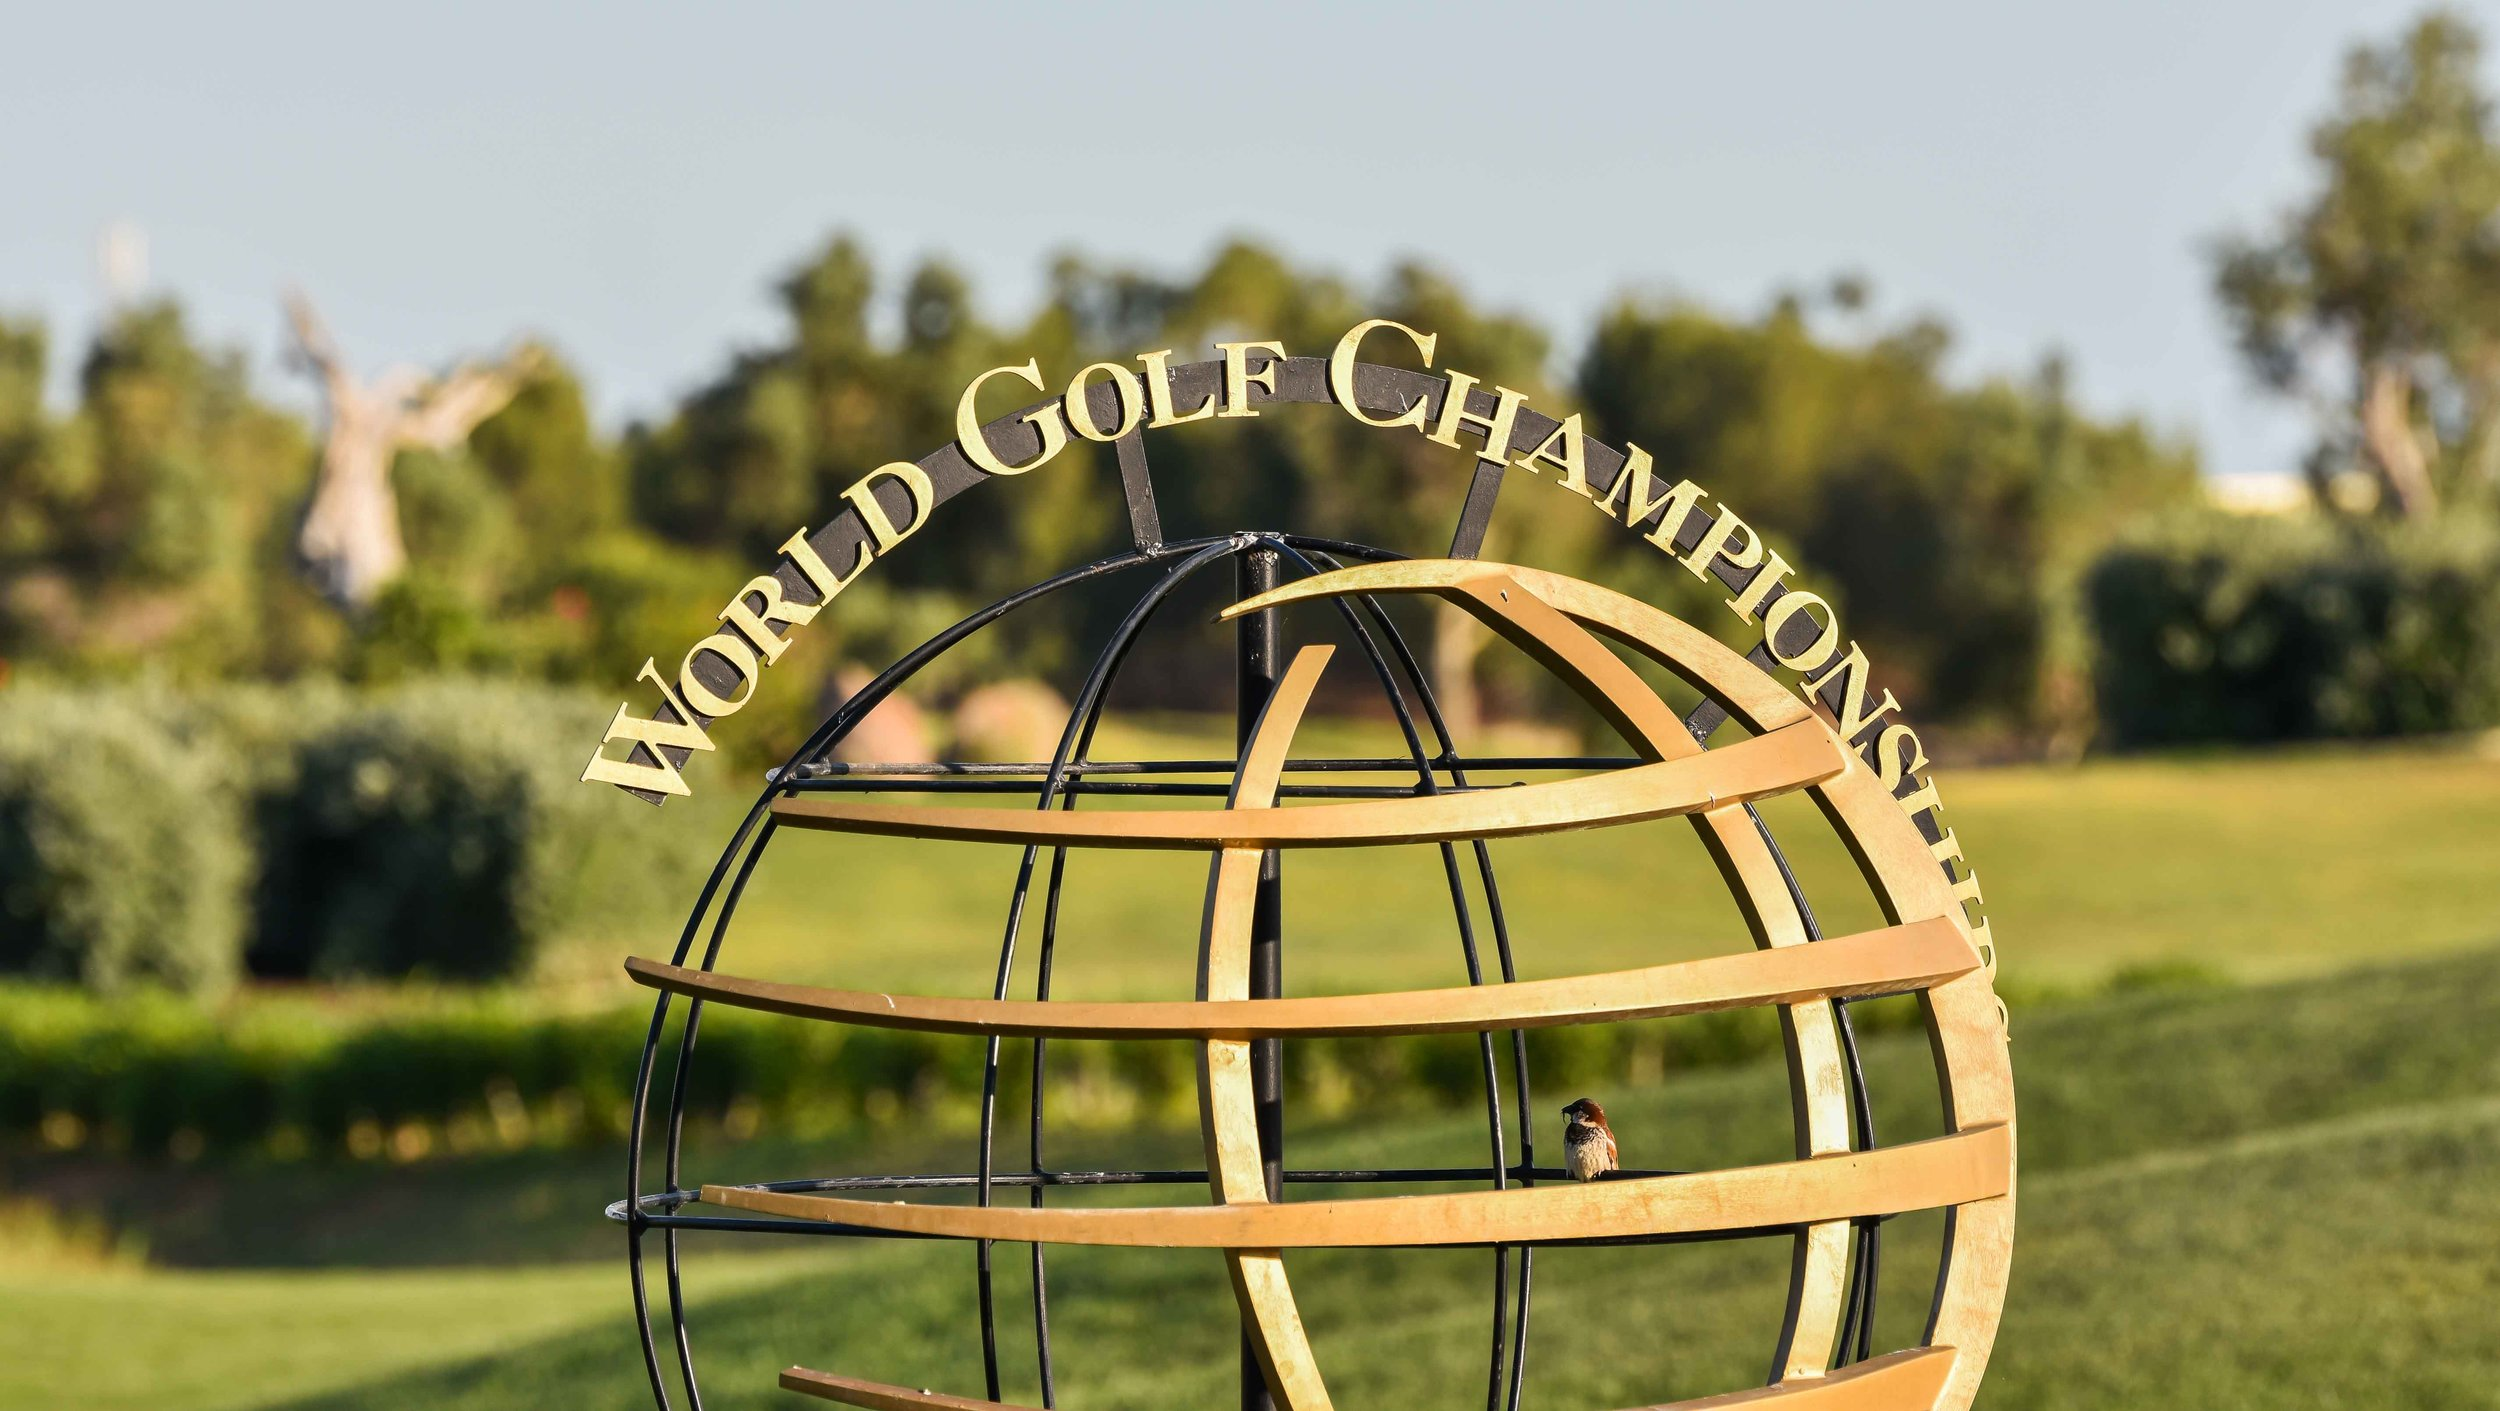 The WGC globe still looms large at Dom Pedro